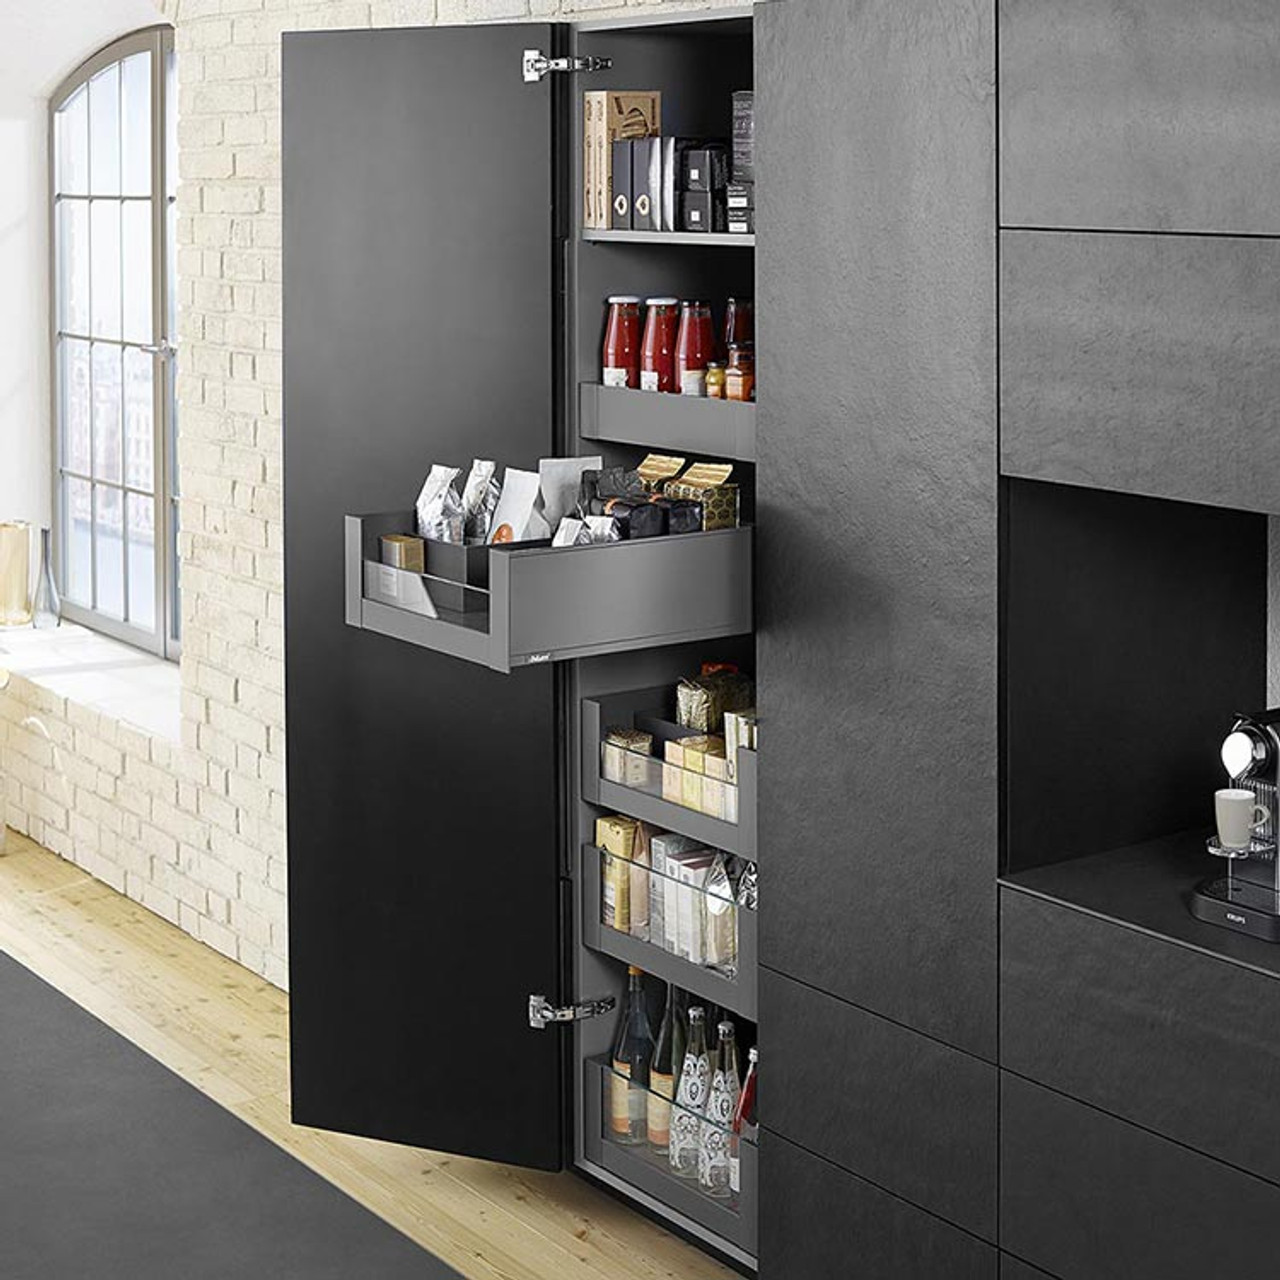 LEGRABOX pure SPACE TOWER is spacious enough to hold provisions for the whole family